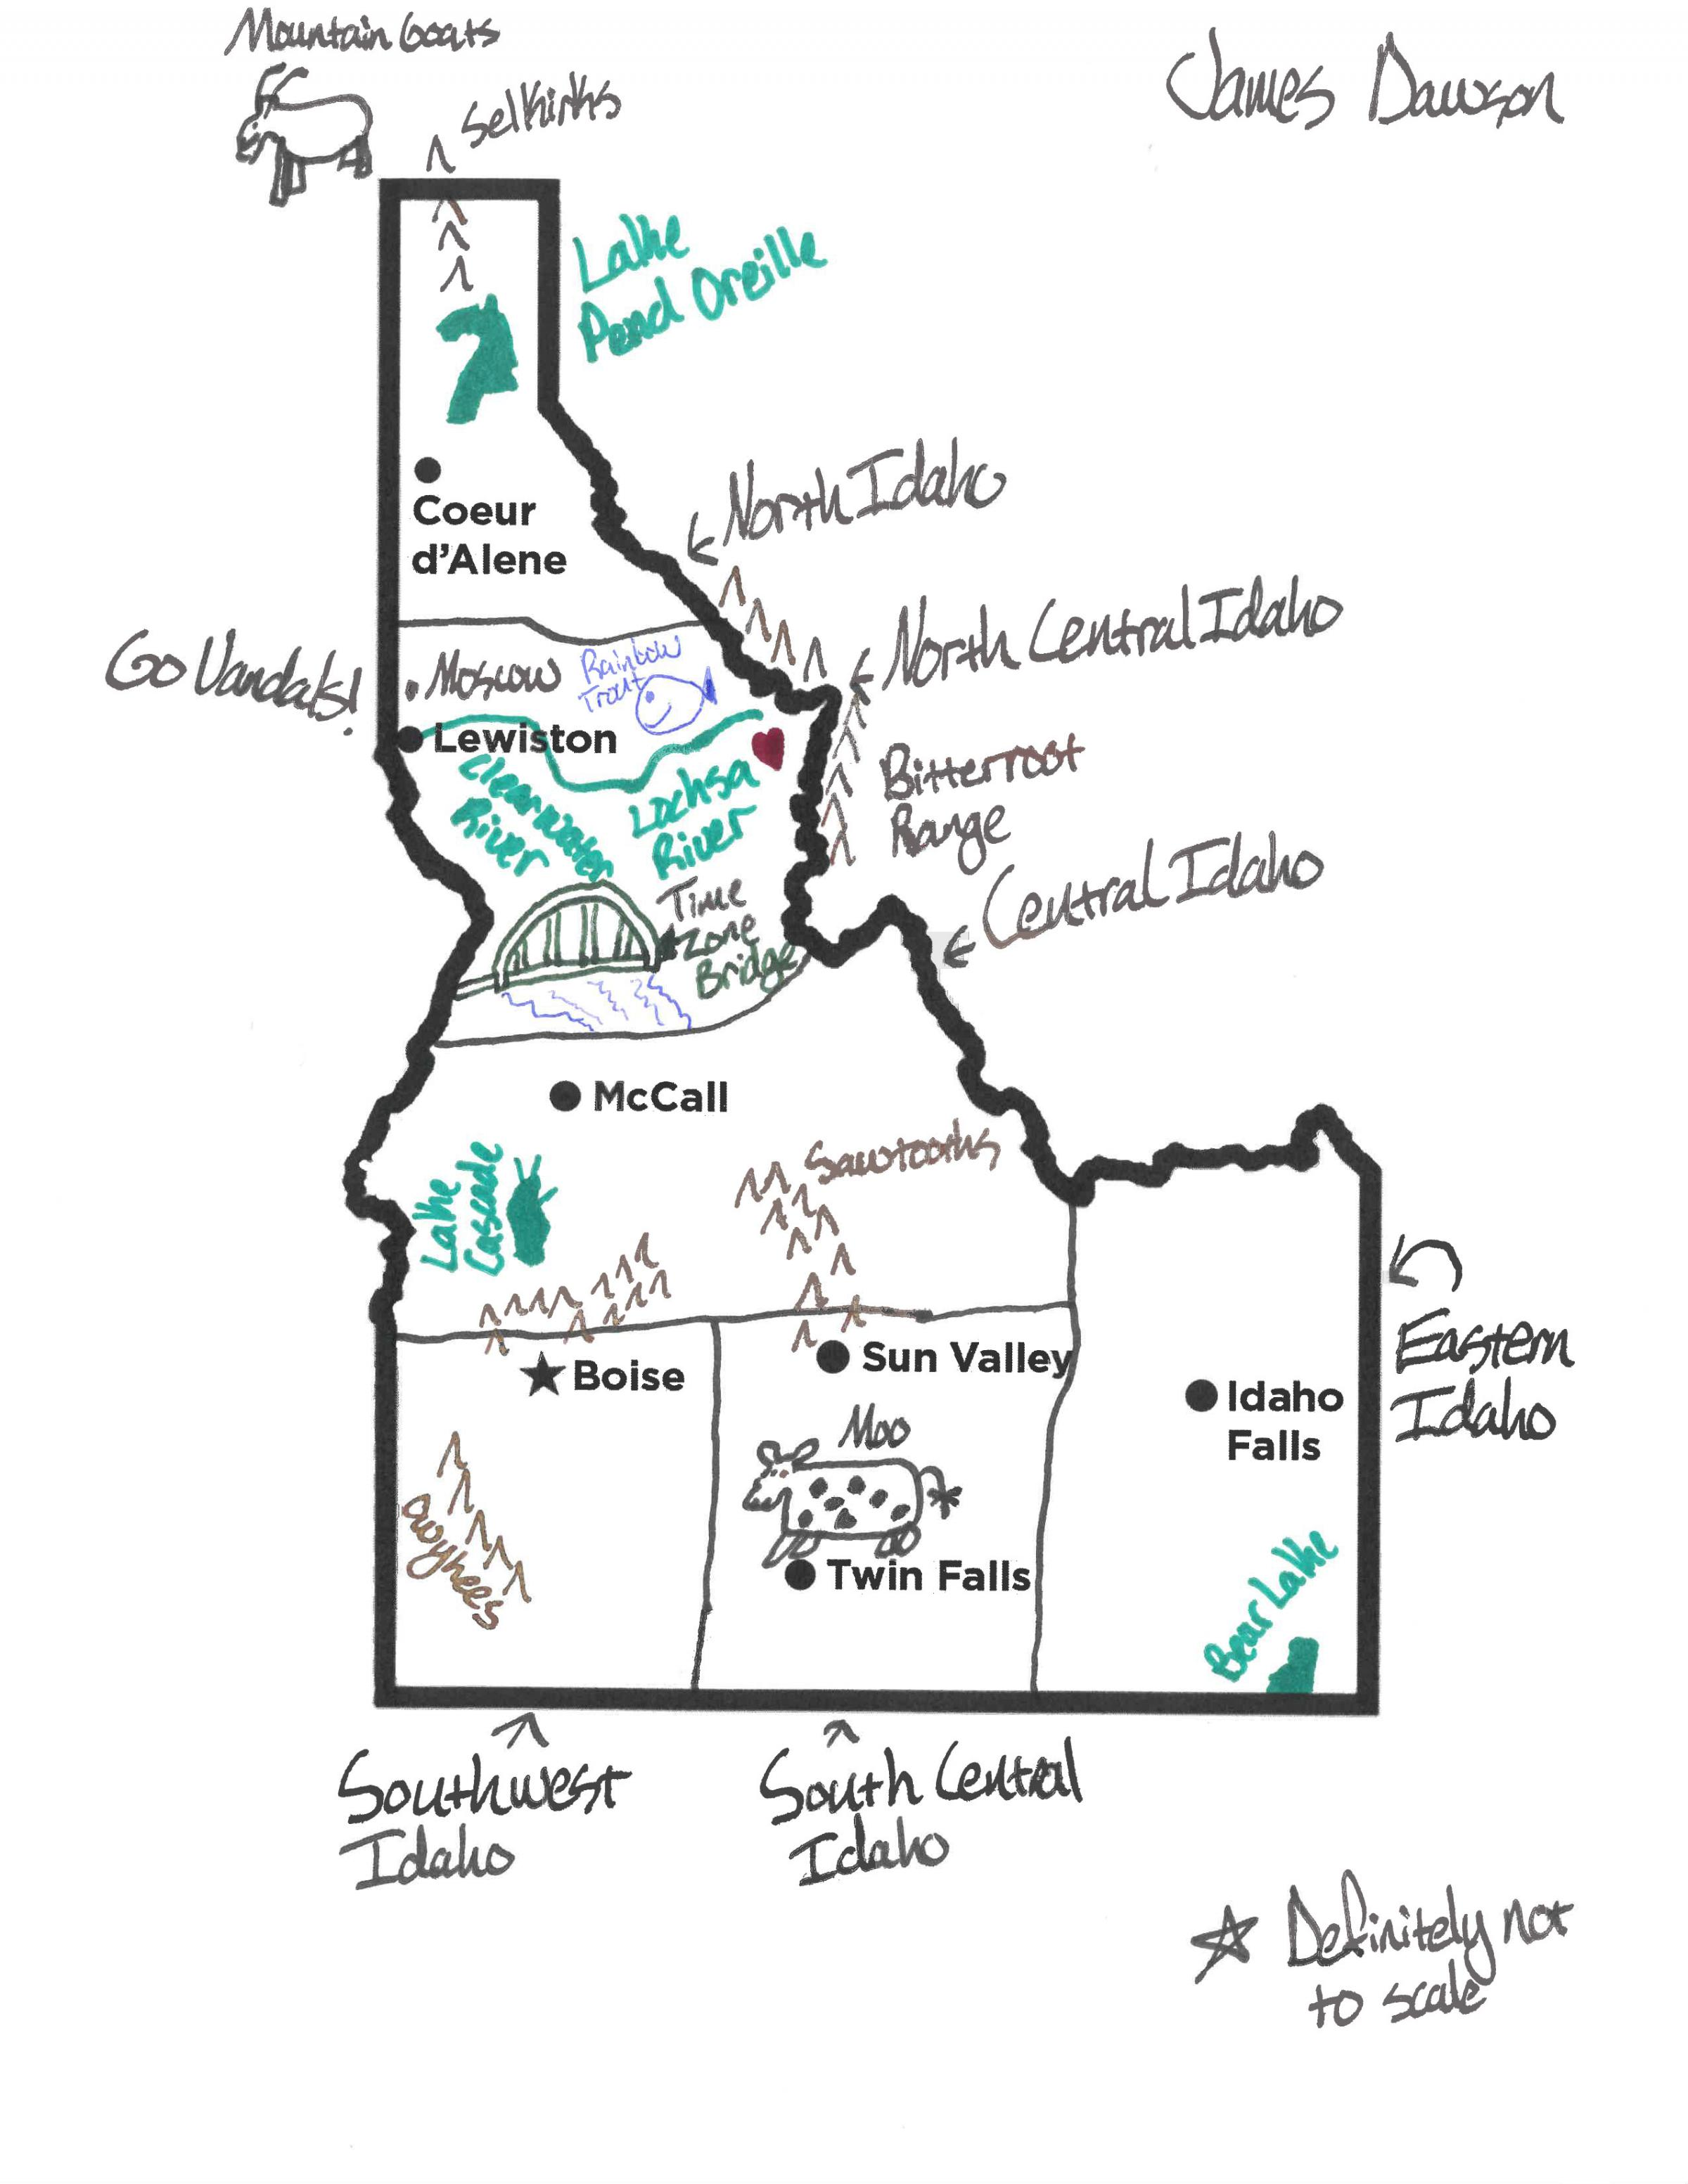 boise idaho time zone map Here We Have Idaho How Would You Draw A Map Of Our State Boise boise idaho time zone map